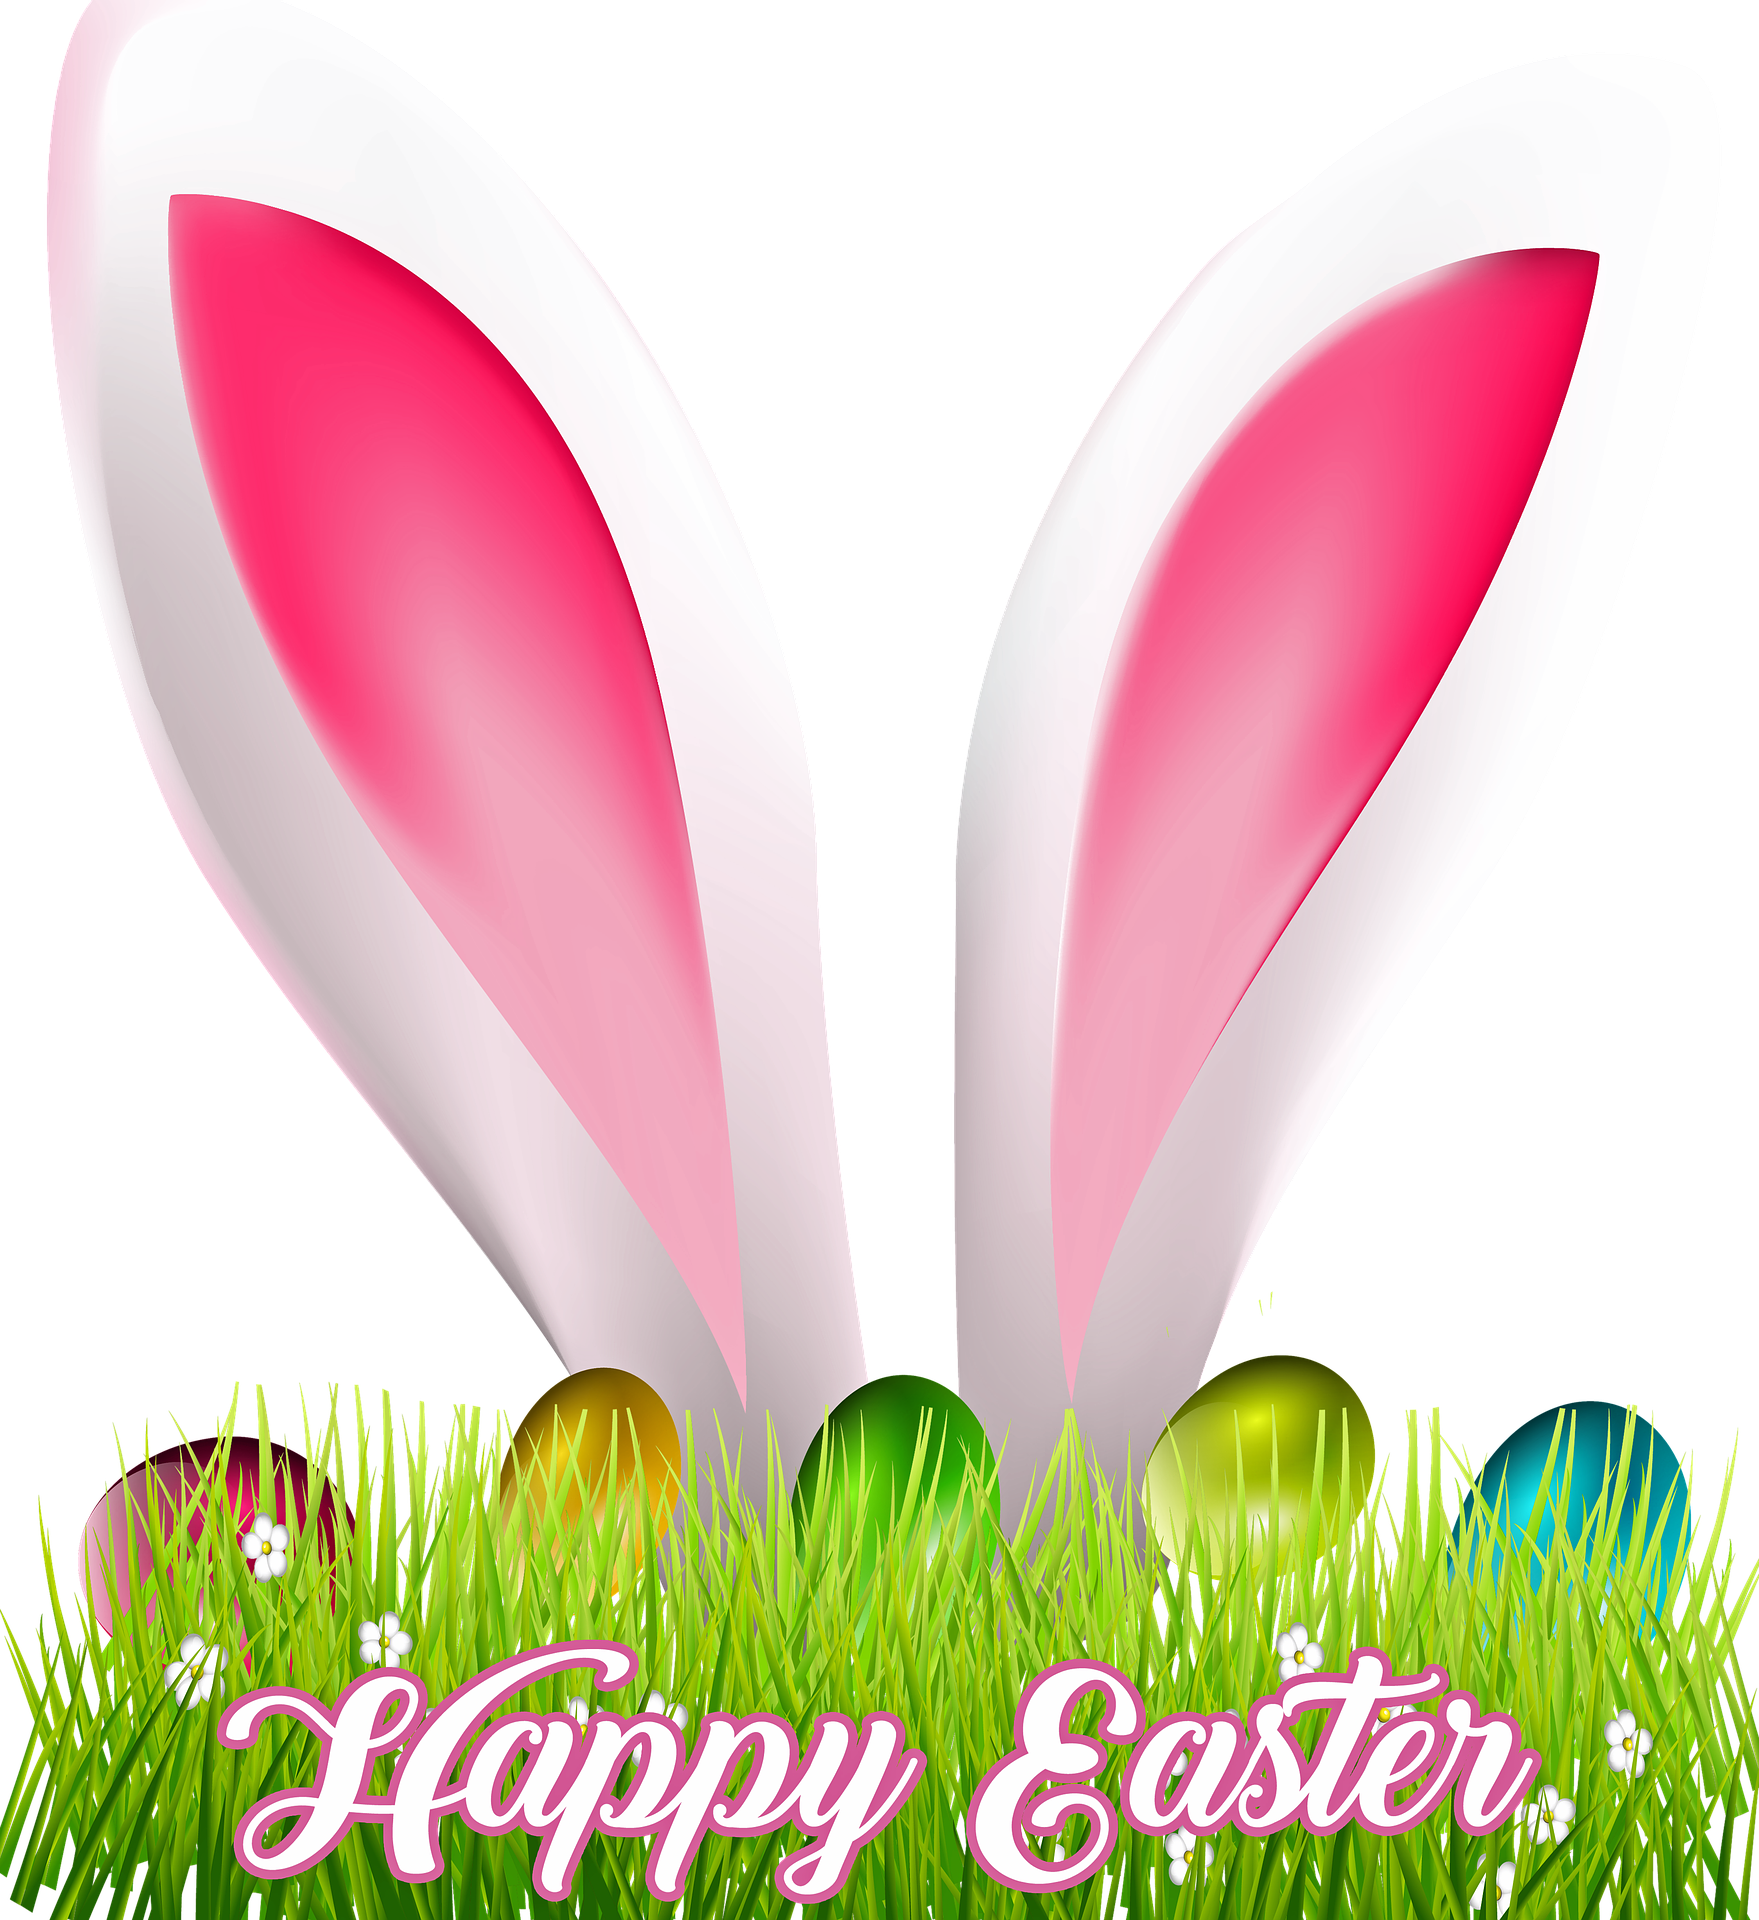 Bunny ears poking out of grass with Happy Easter text